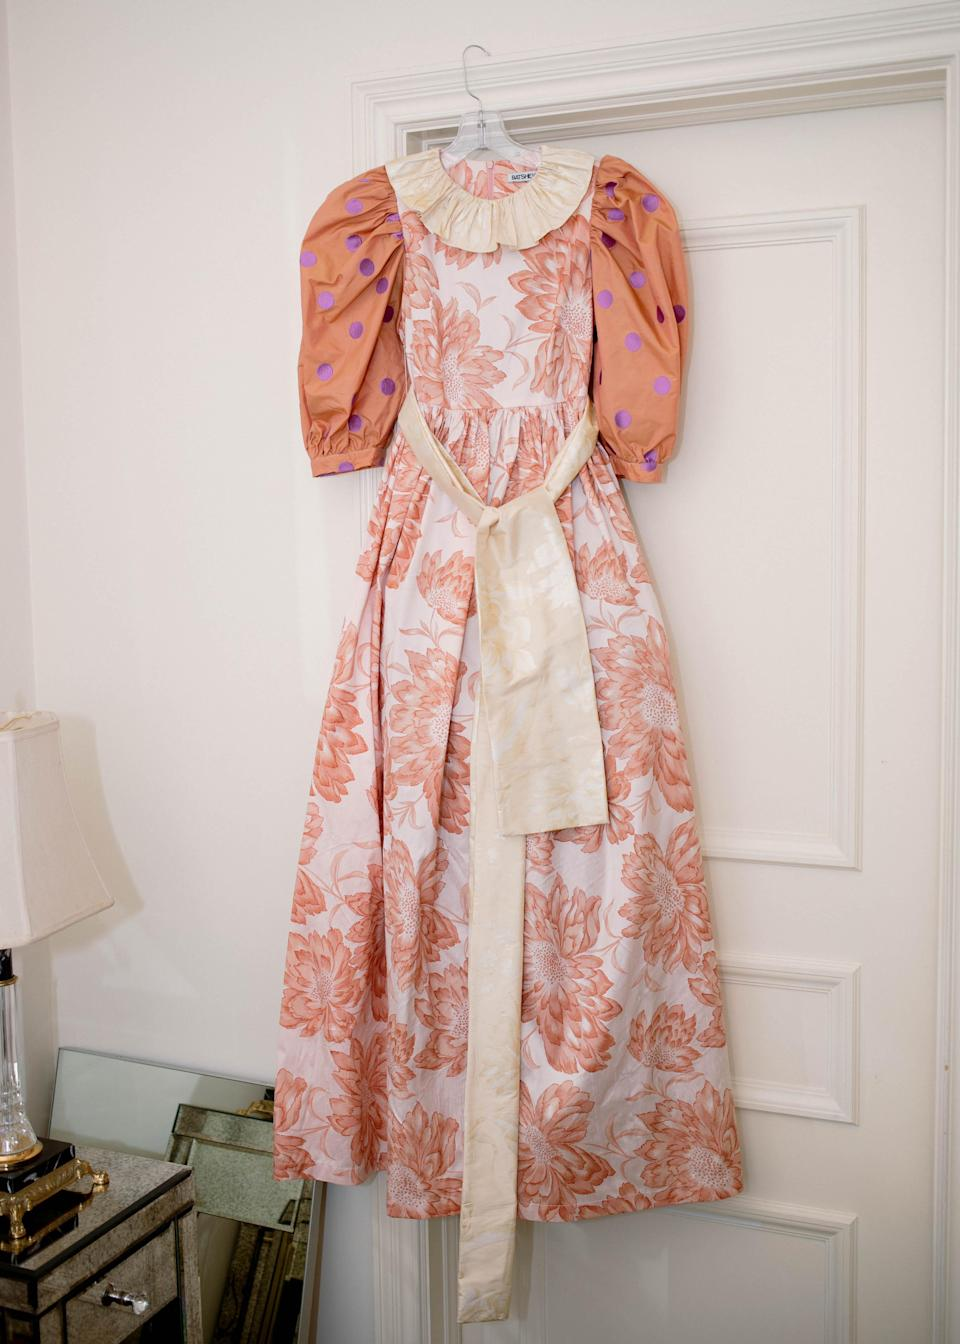 Hay's dress, which Hay made out of floral print taffeta and leftover fabric from Hall's dress.